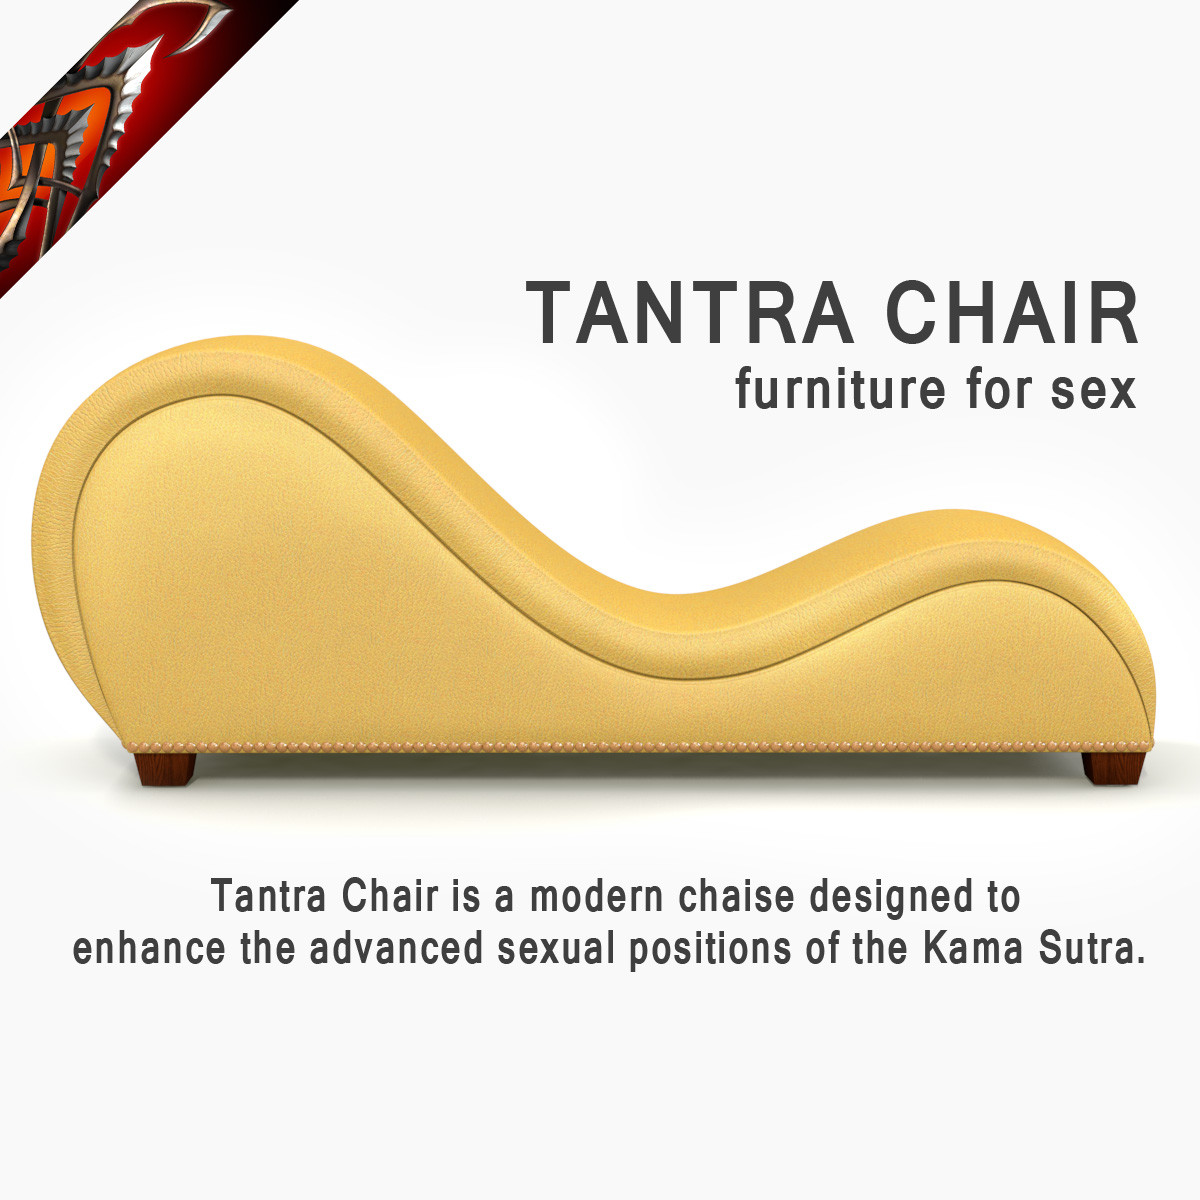 Furniture for sex